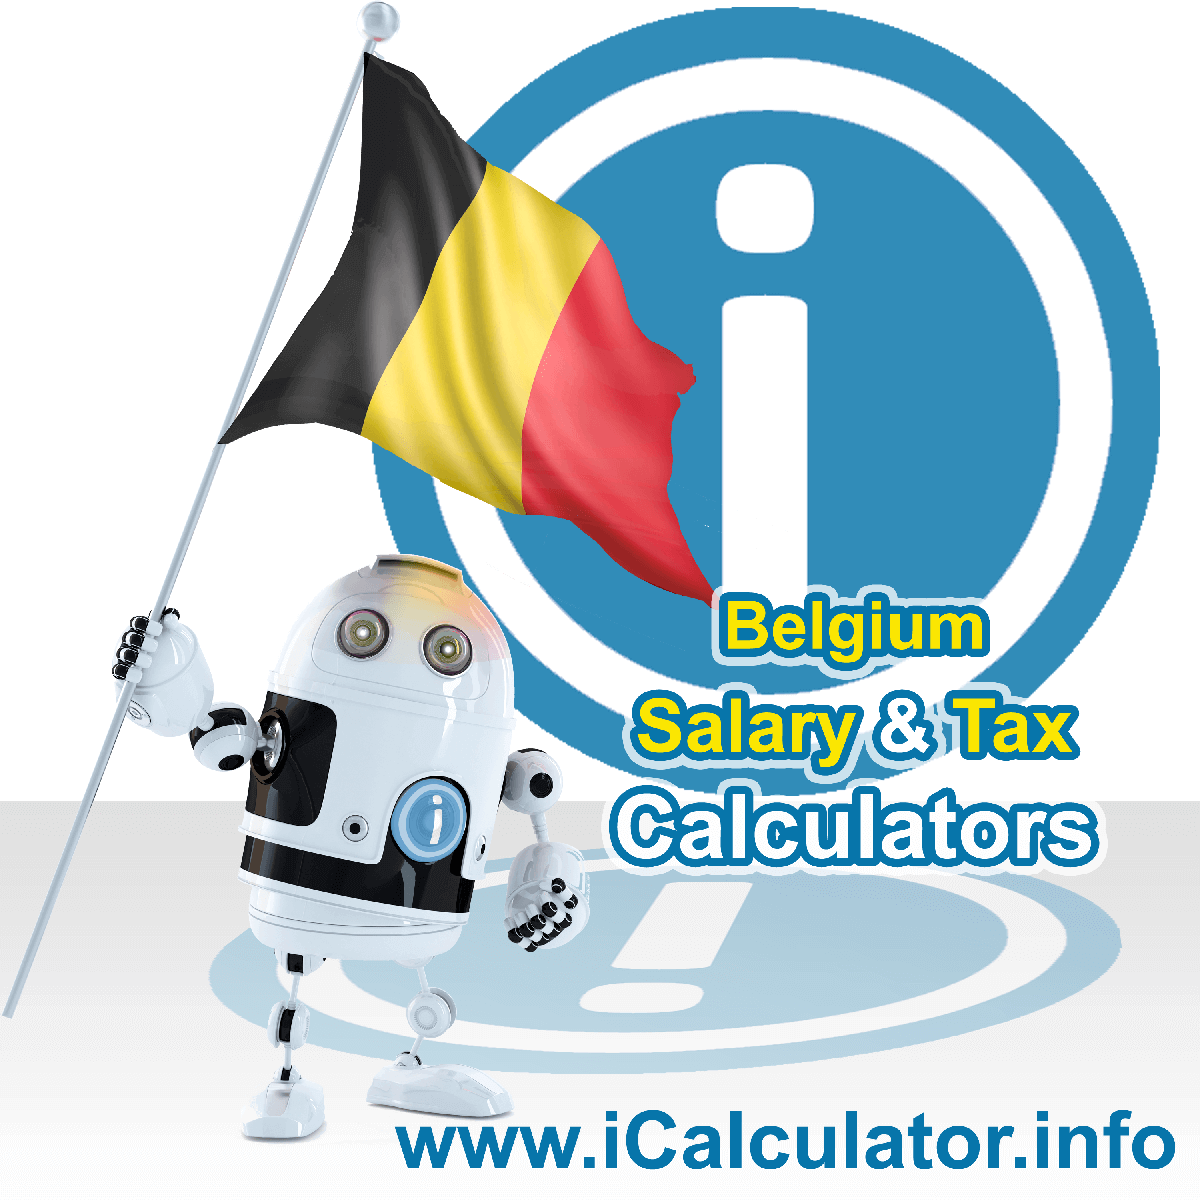 Belgium Tax Calculator. This image shows the Belgium flag and information relating to the tax formula for the Belgium Salary Calculator